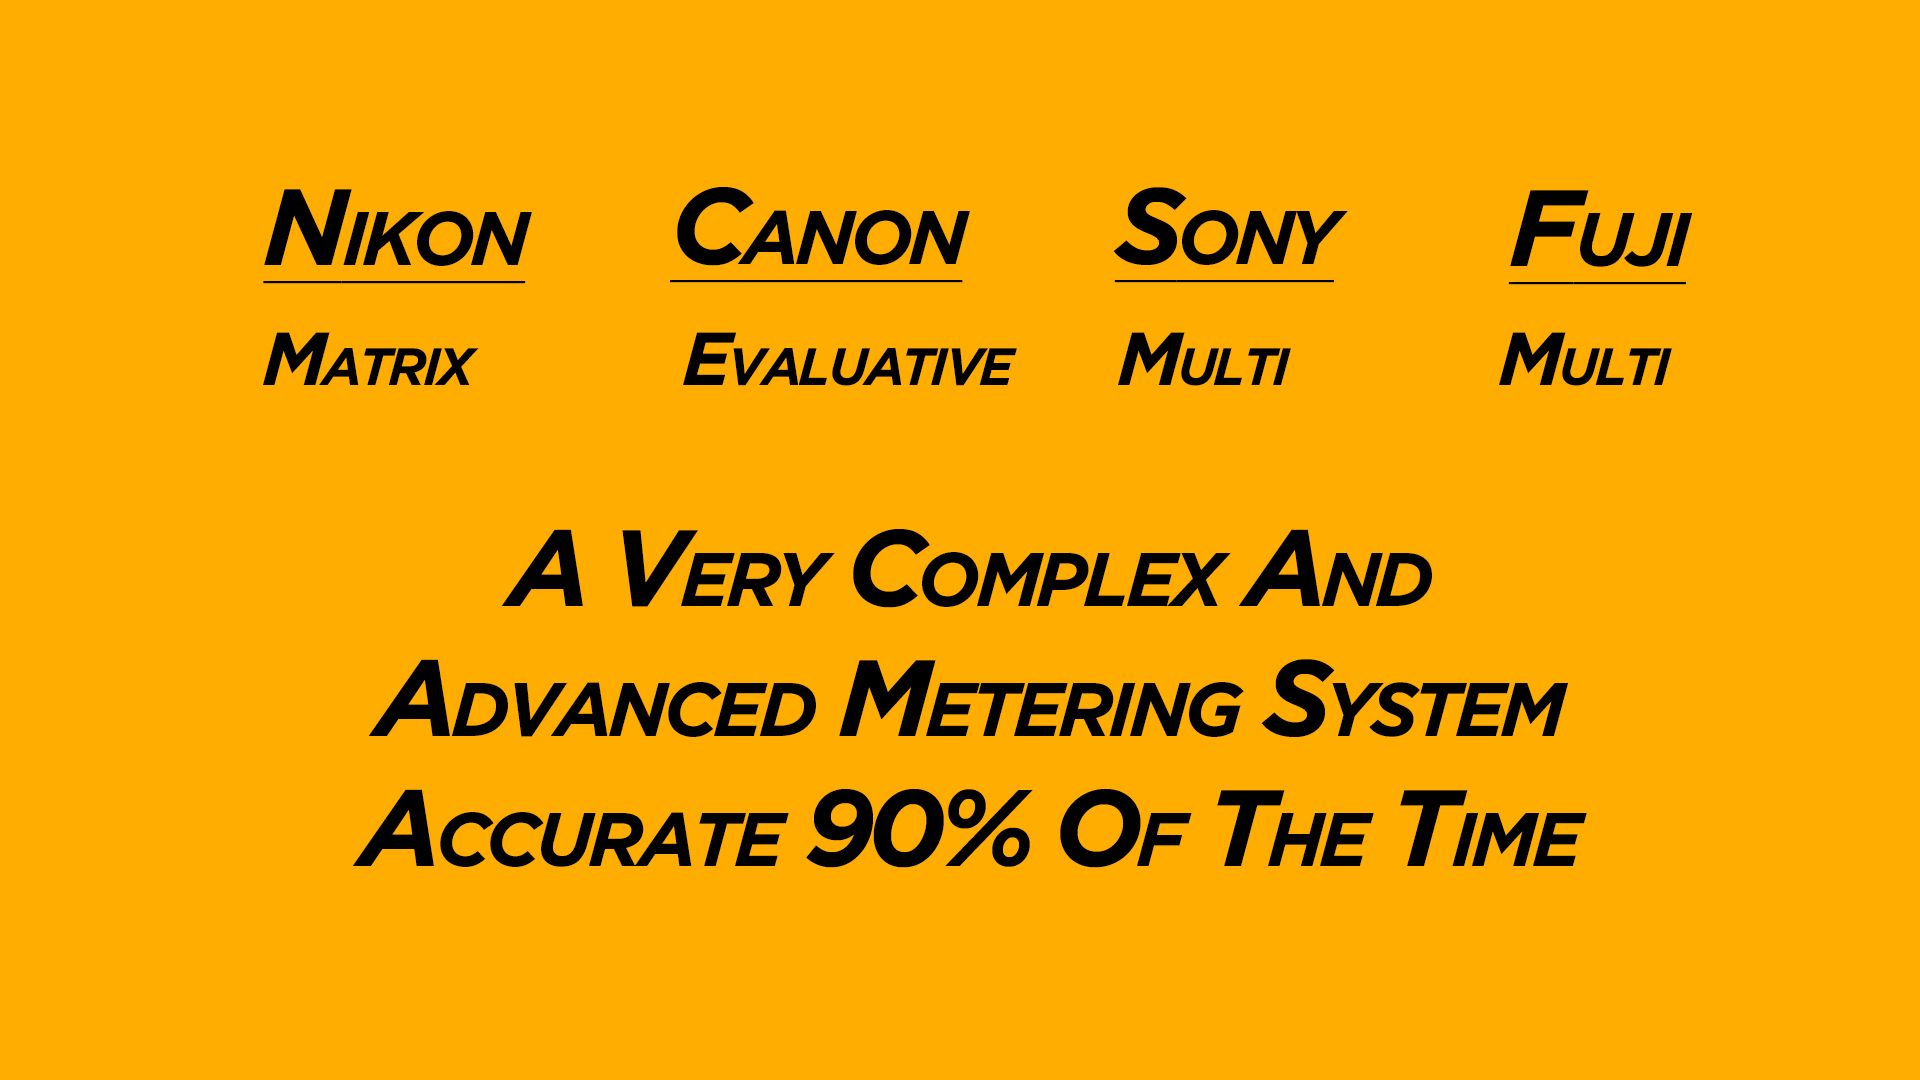 Nikon Matrix Canon Evaluative metering